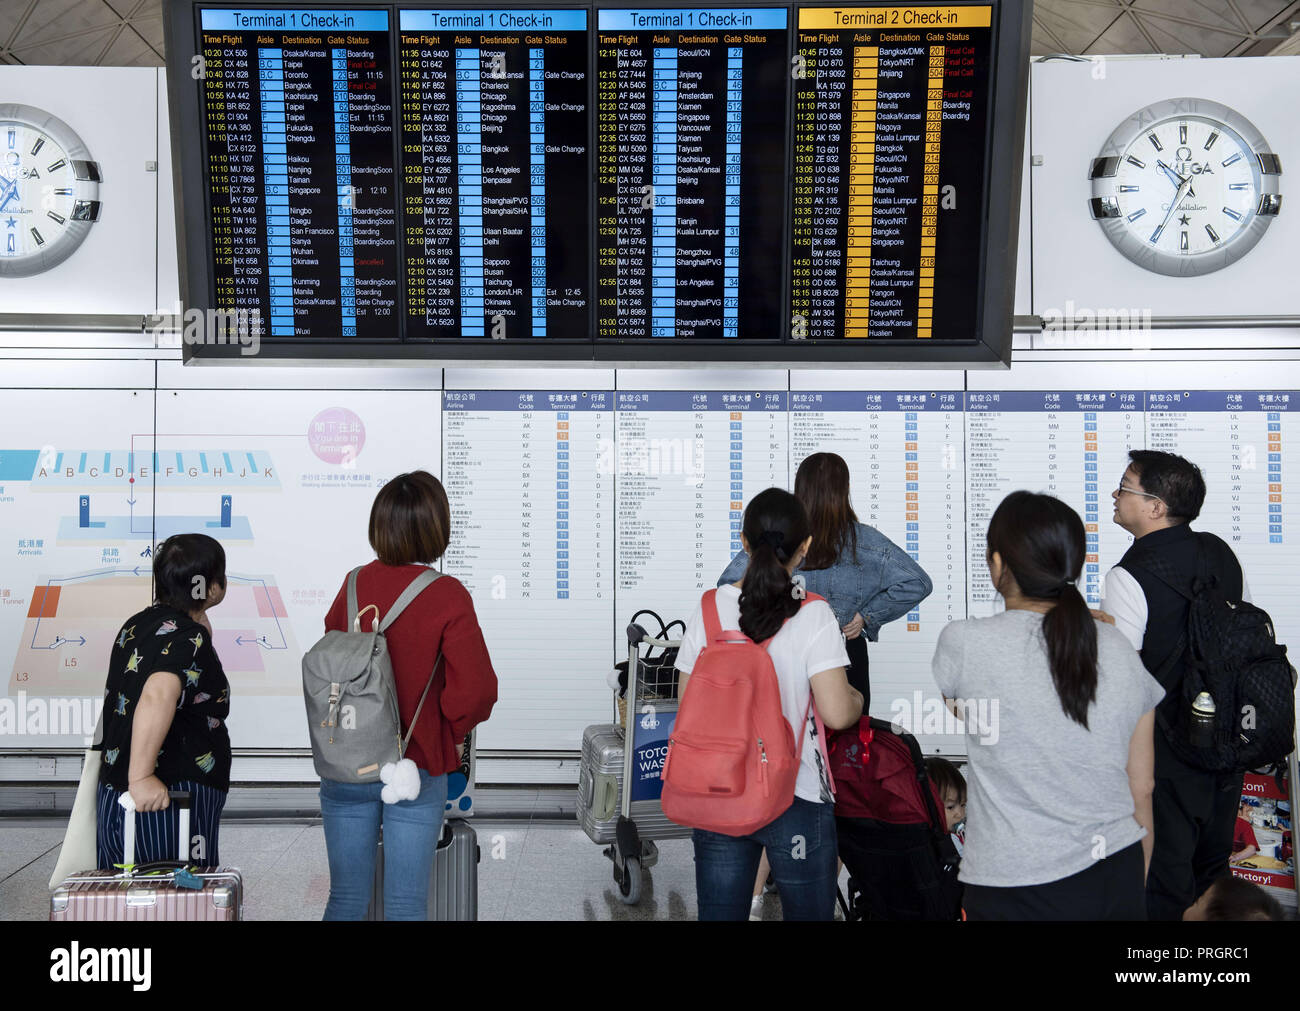 Chek Lap Kok island, Hong Kong. 1st Jan, 2014. Passengers are seen looking at a screen where airline assigned check-in desk are located. Credit: Miguel Candela/SOPA Images/ZUMA Wire/Alamy Live News - Stock Image